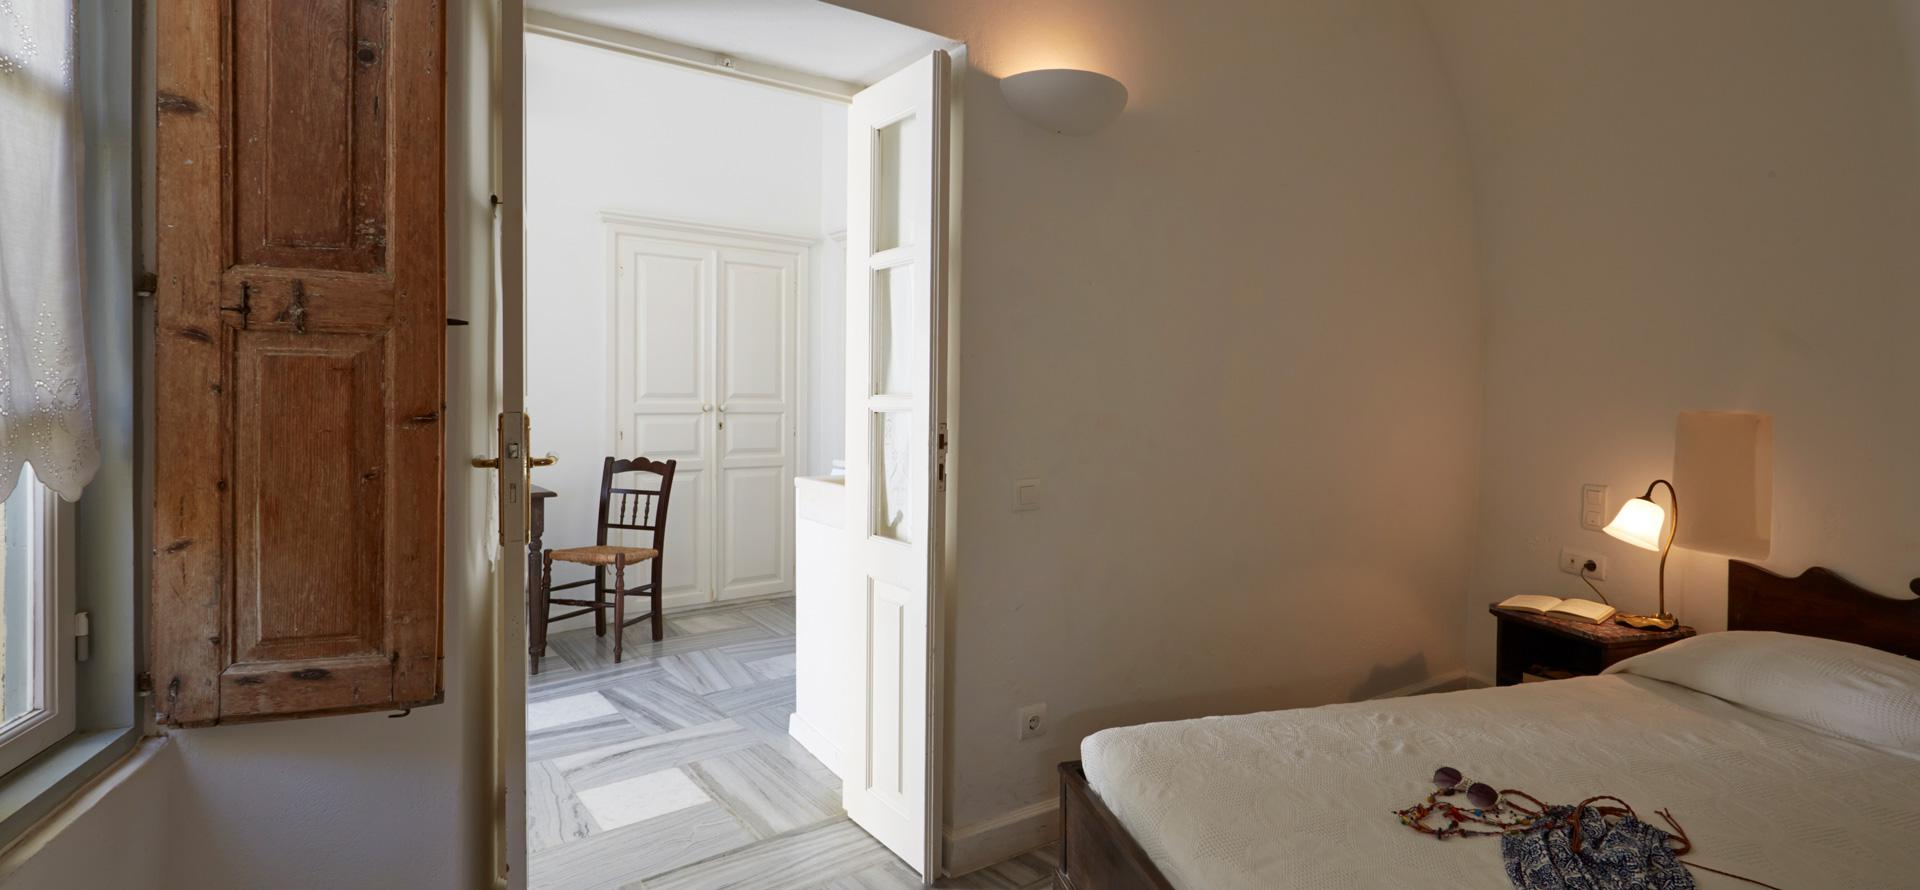 Cori Rigas Suites-Fira-Santorini-Two Bedroom Suite 1.4